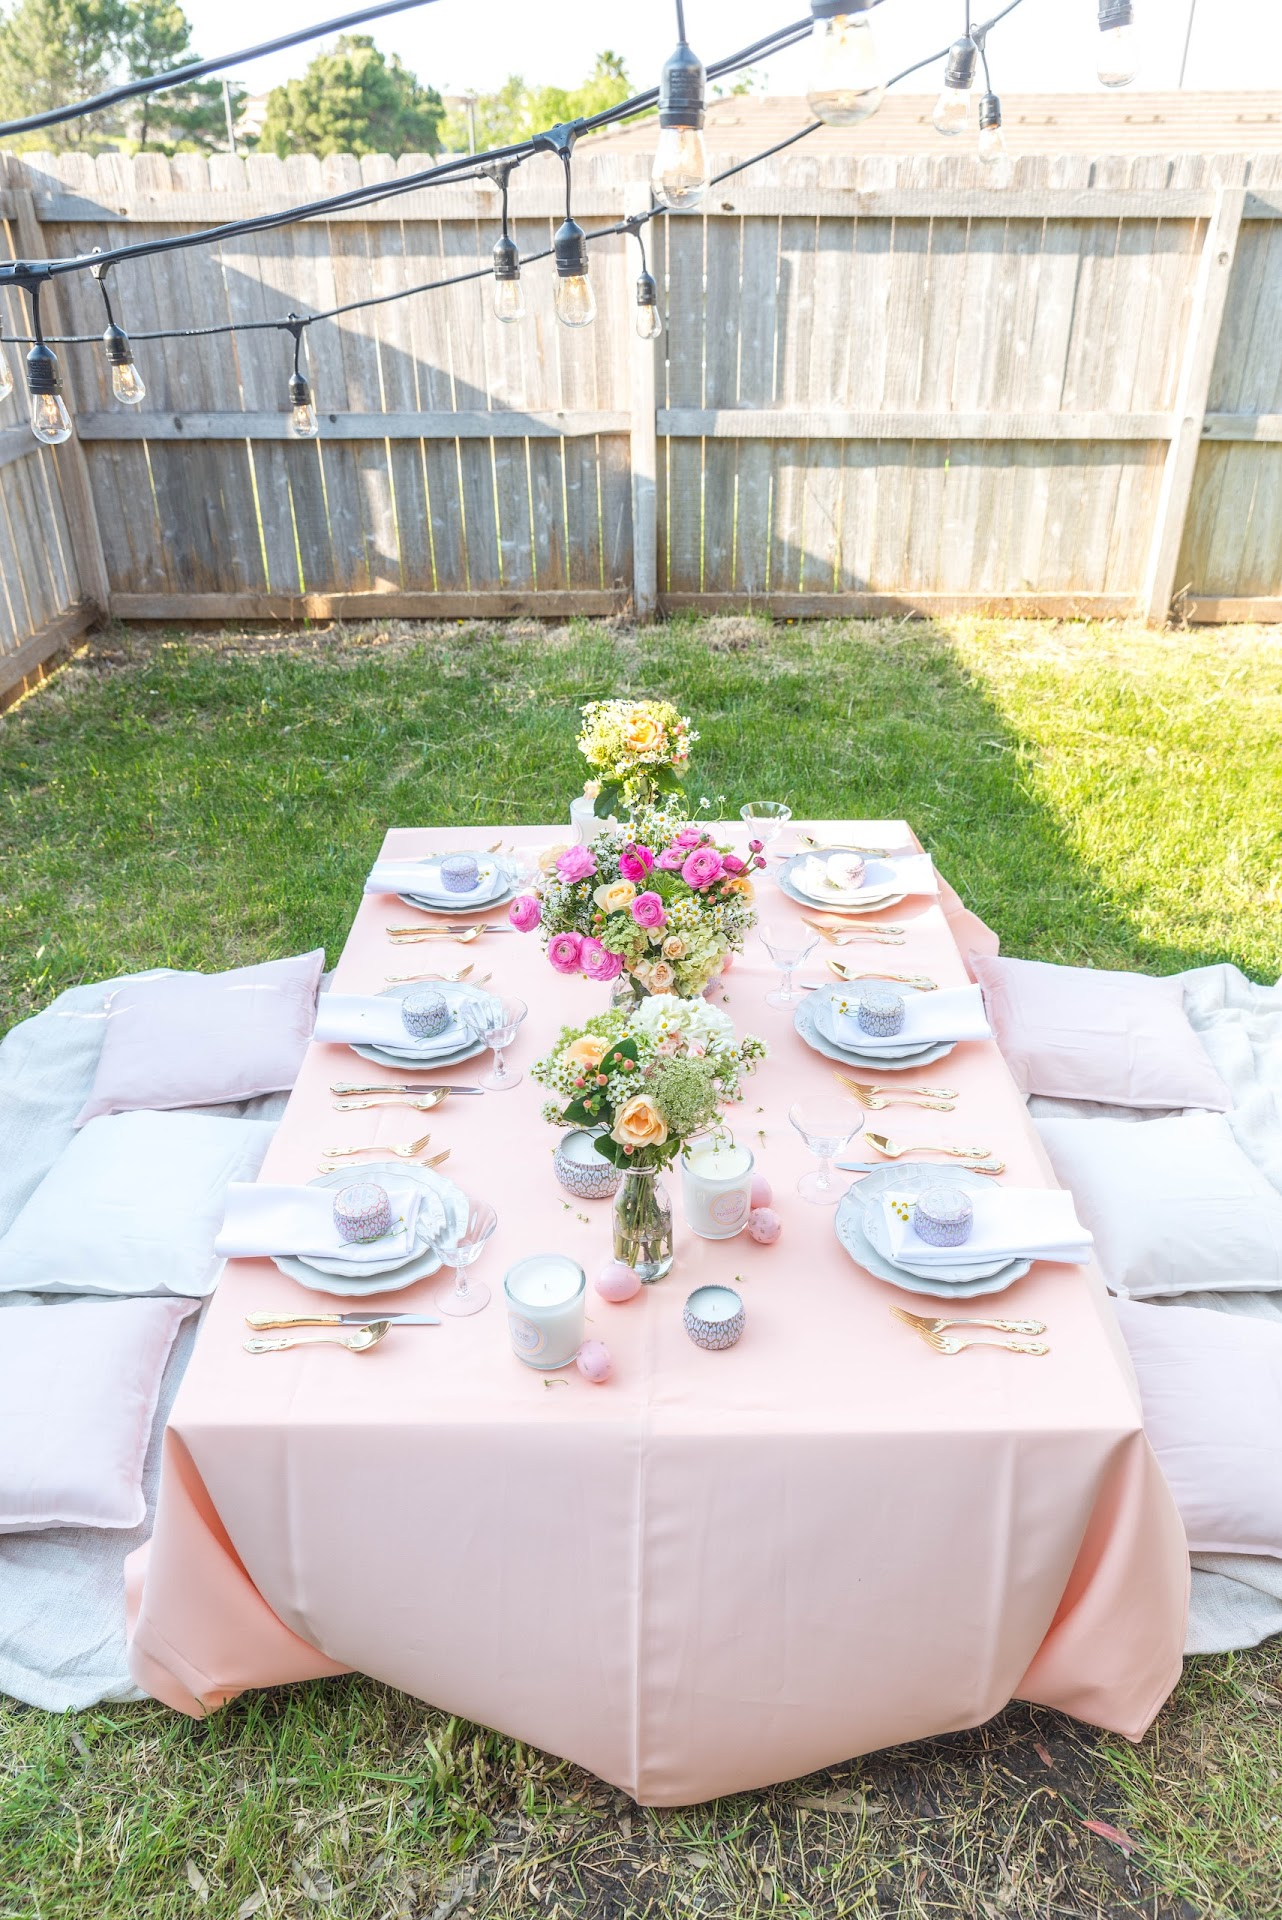 Easter dinner party, ideas, easter party, inspo, pink and peach color scheme, wedding, pink peach white, low diner table, low table party, backyard dinner party, party blogger, san francsico bay area blog, california, backyard picnic, unique party ideas, tablescape, gold flatware, Classic Party Rentals, Voluspa Candles,